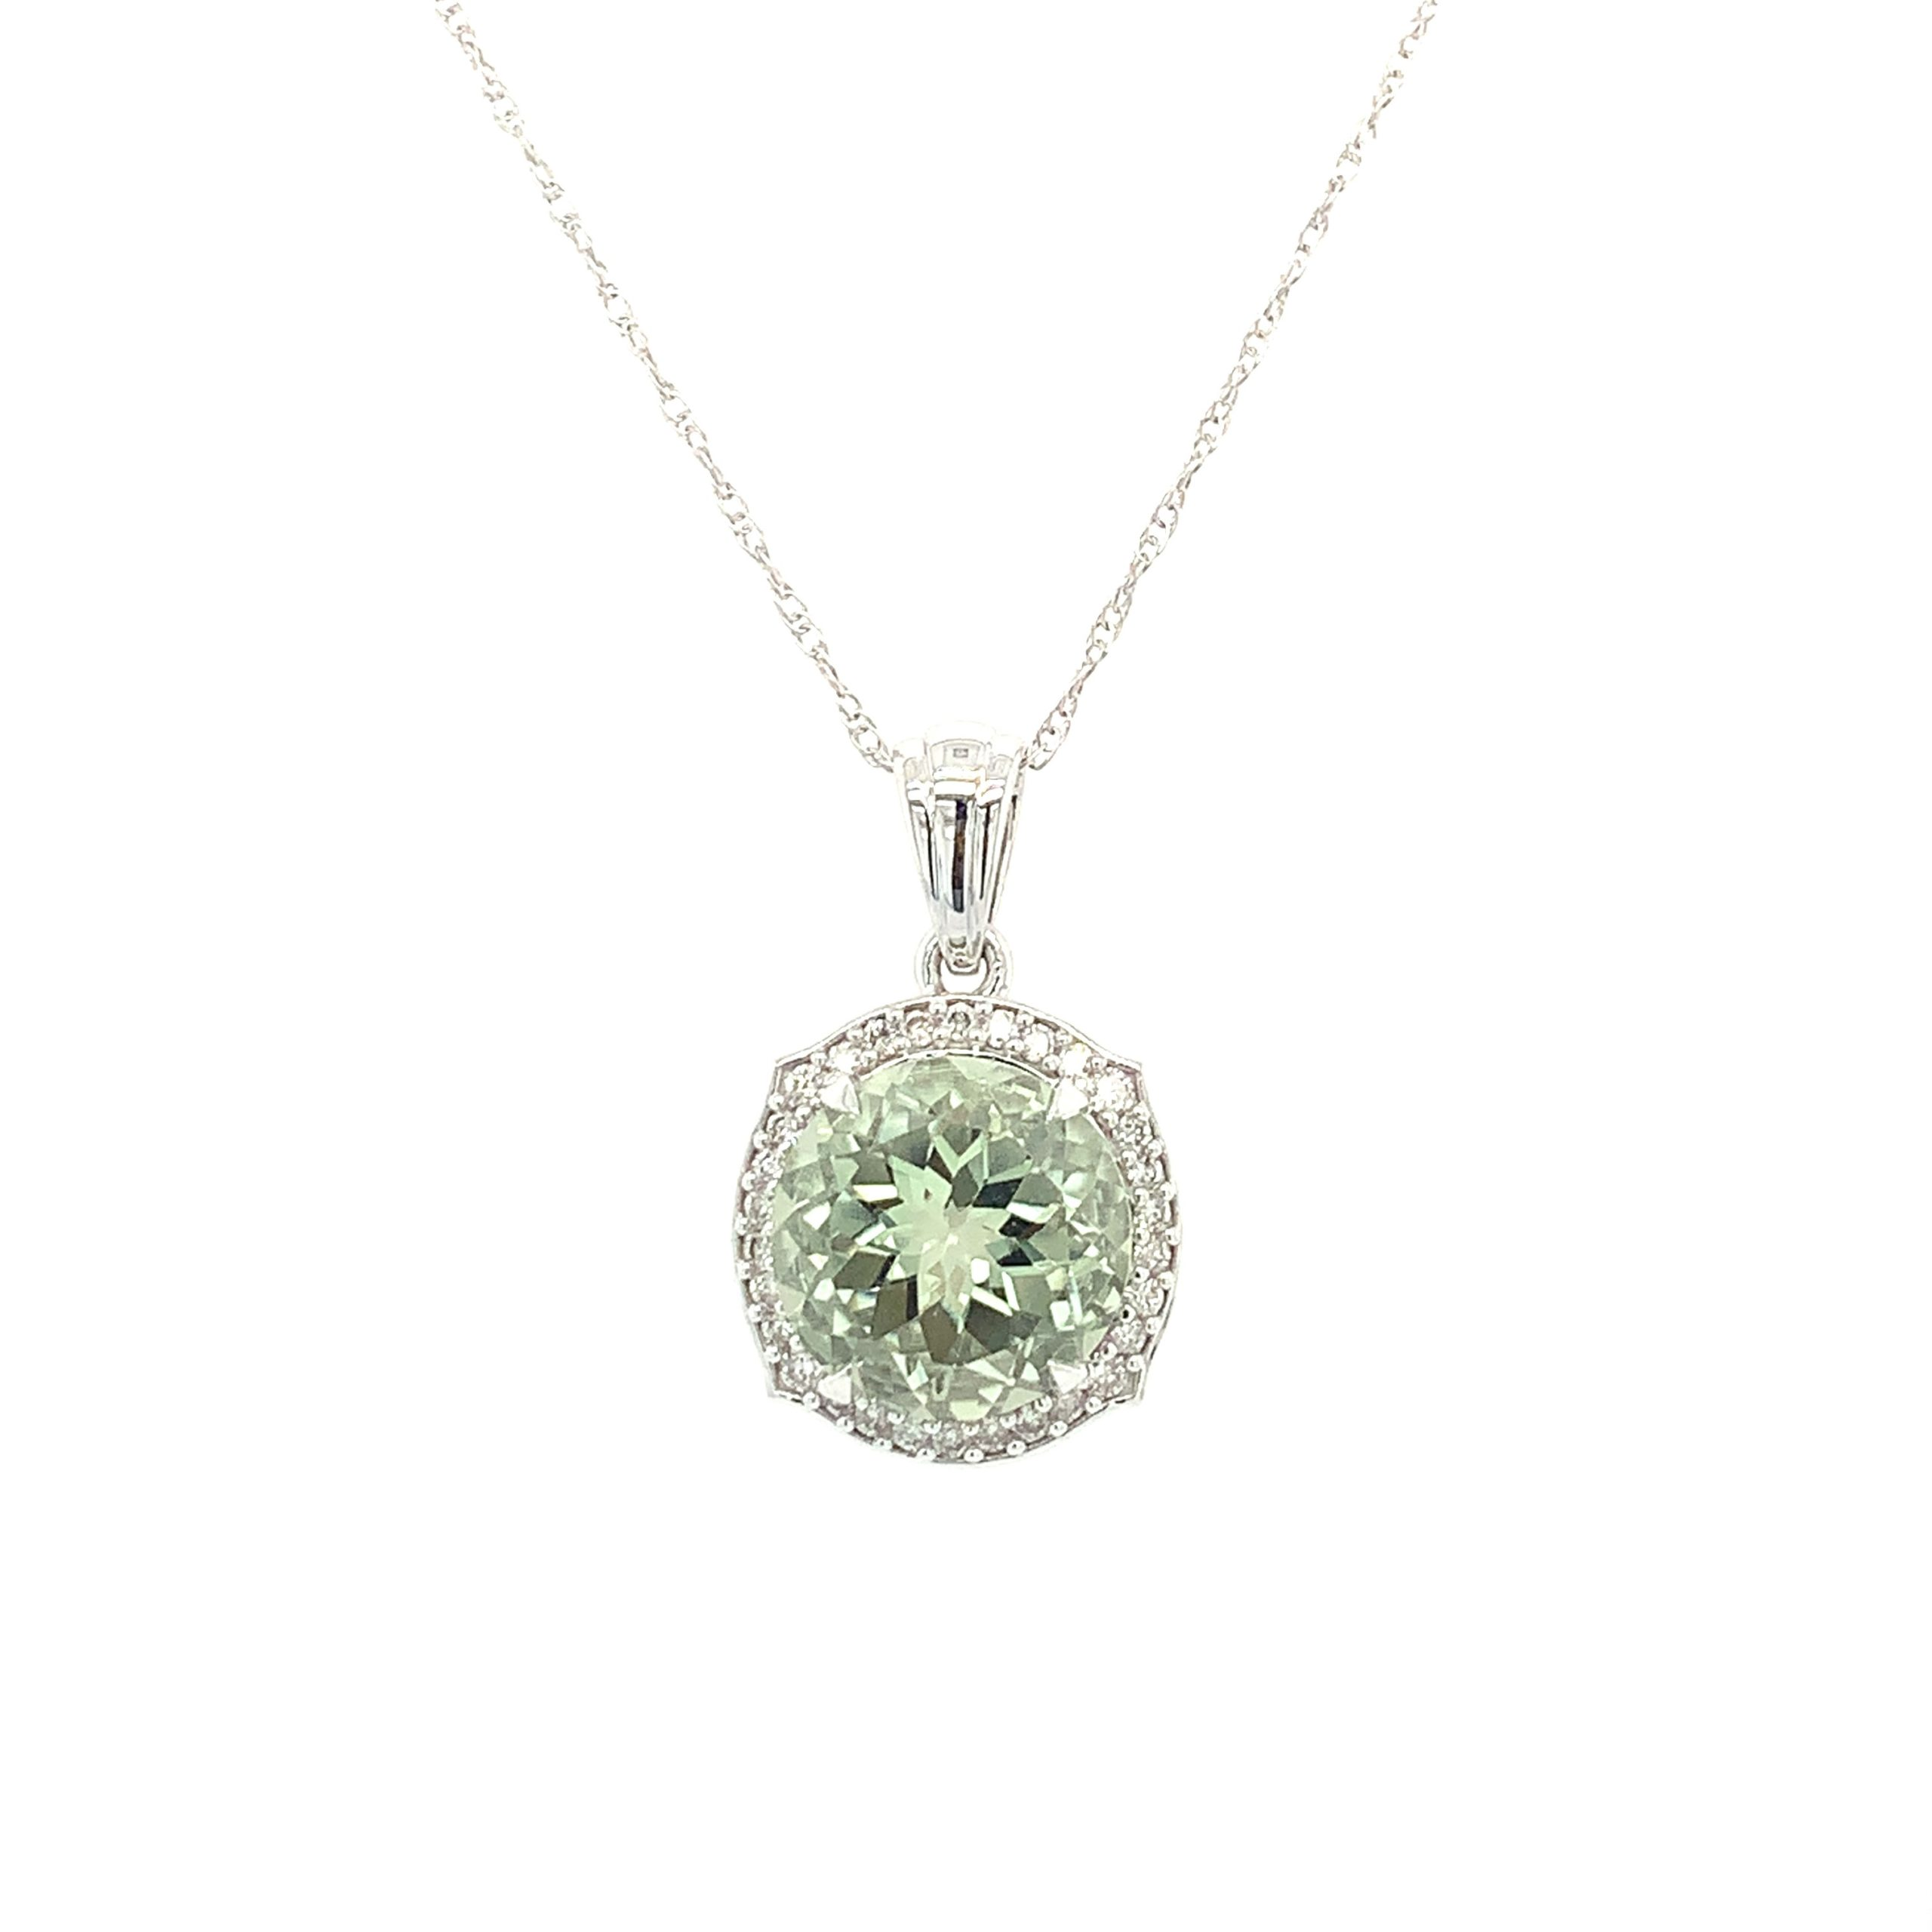 White Gold Green Amethyst Pendant Necklace